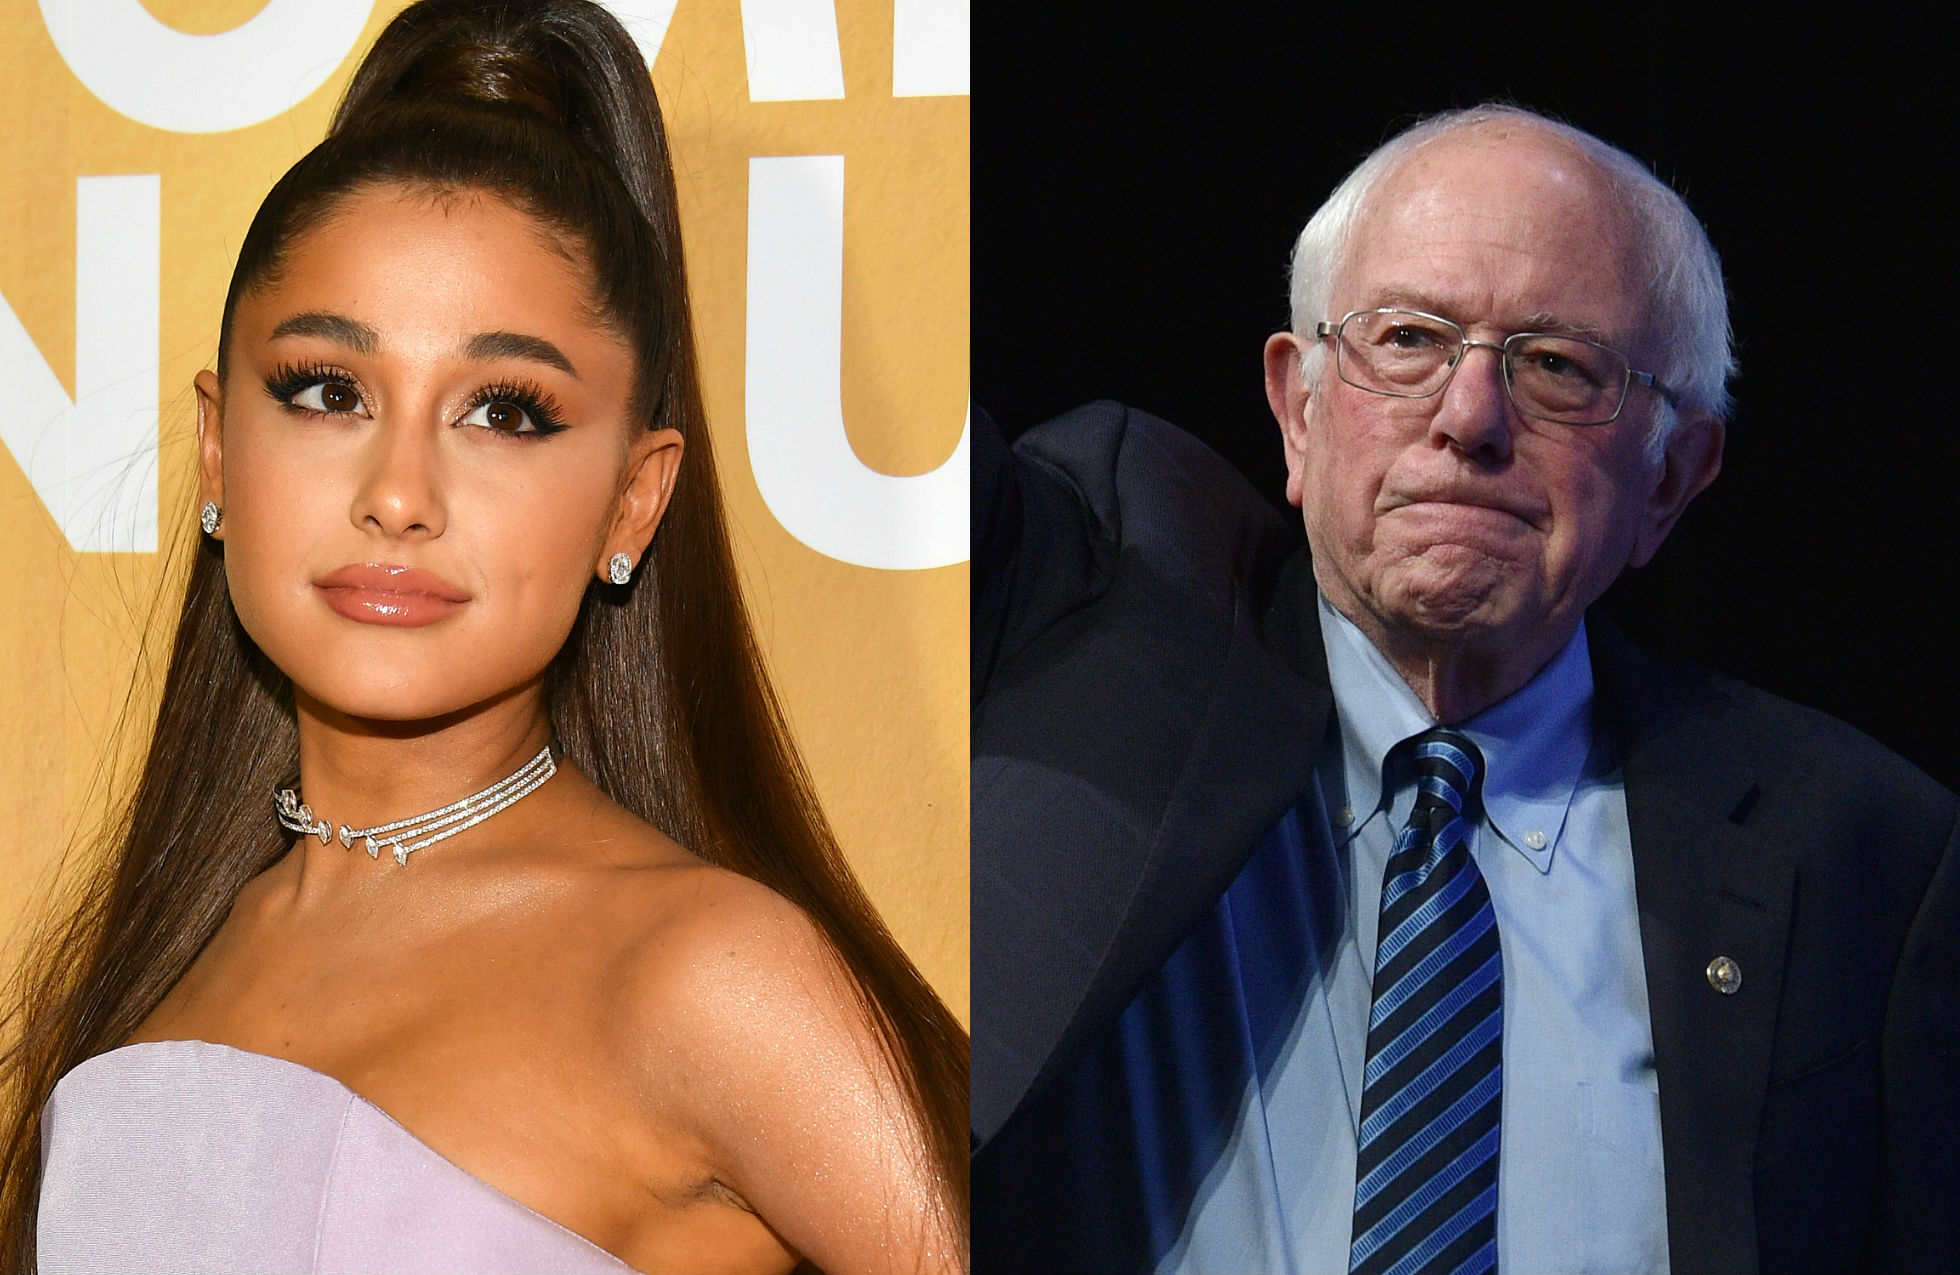 Bernie Sanders attends Ariana Grande concert – and Ariana approves